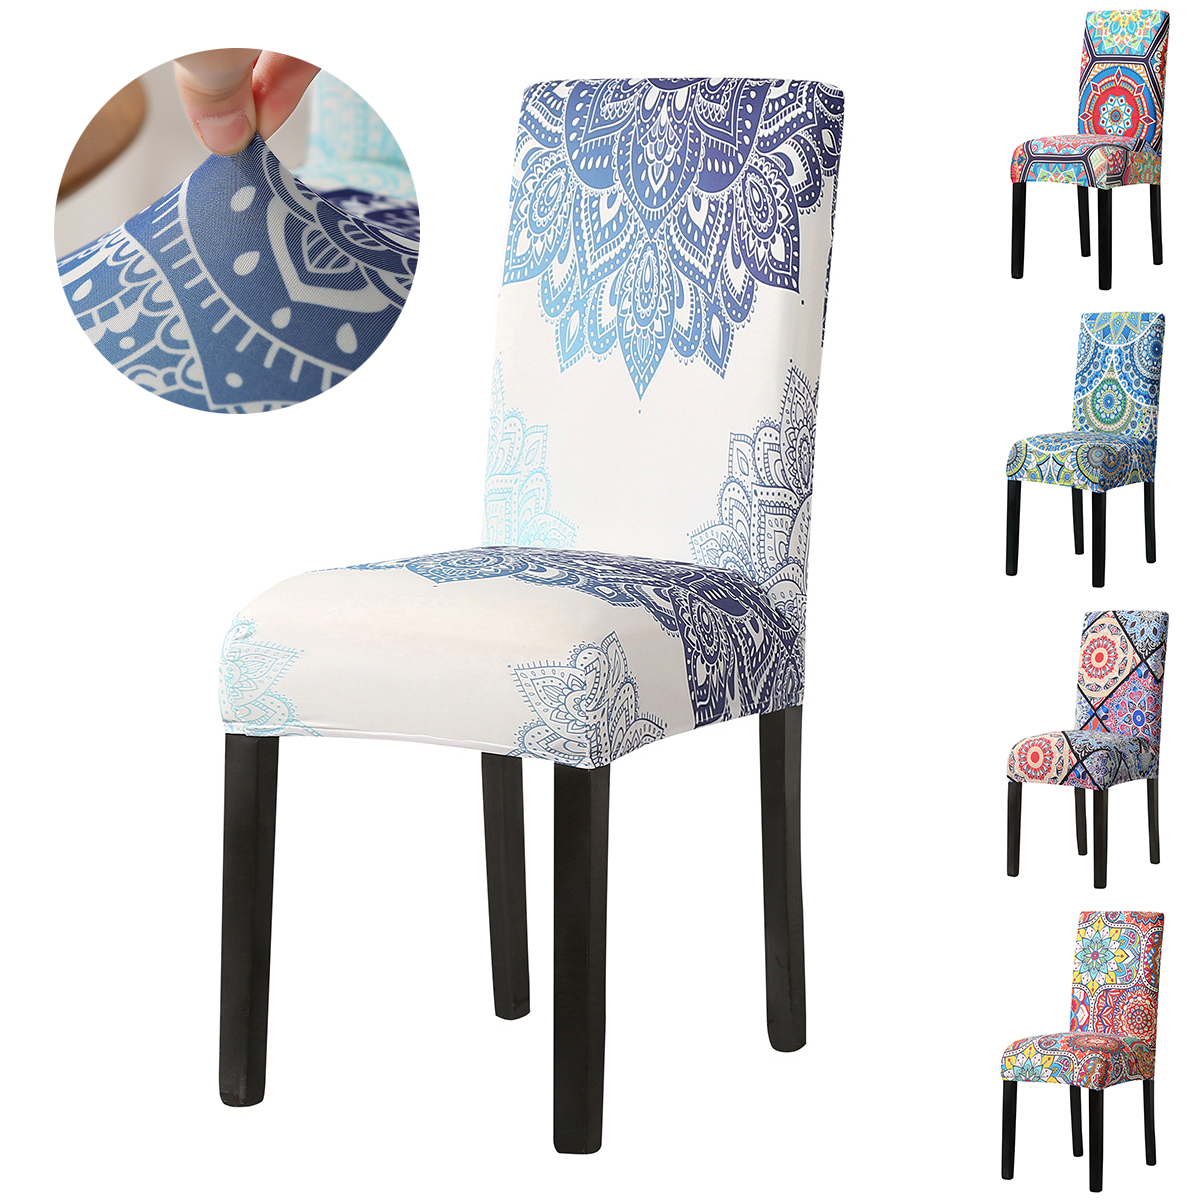 2//4//6//8//10 Pcs Spandex Stretch Wedding Banquet Chair Seat Cover Home Party Decor